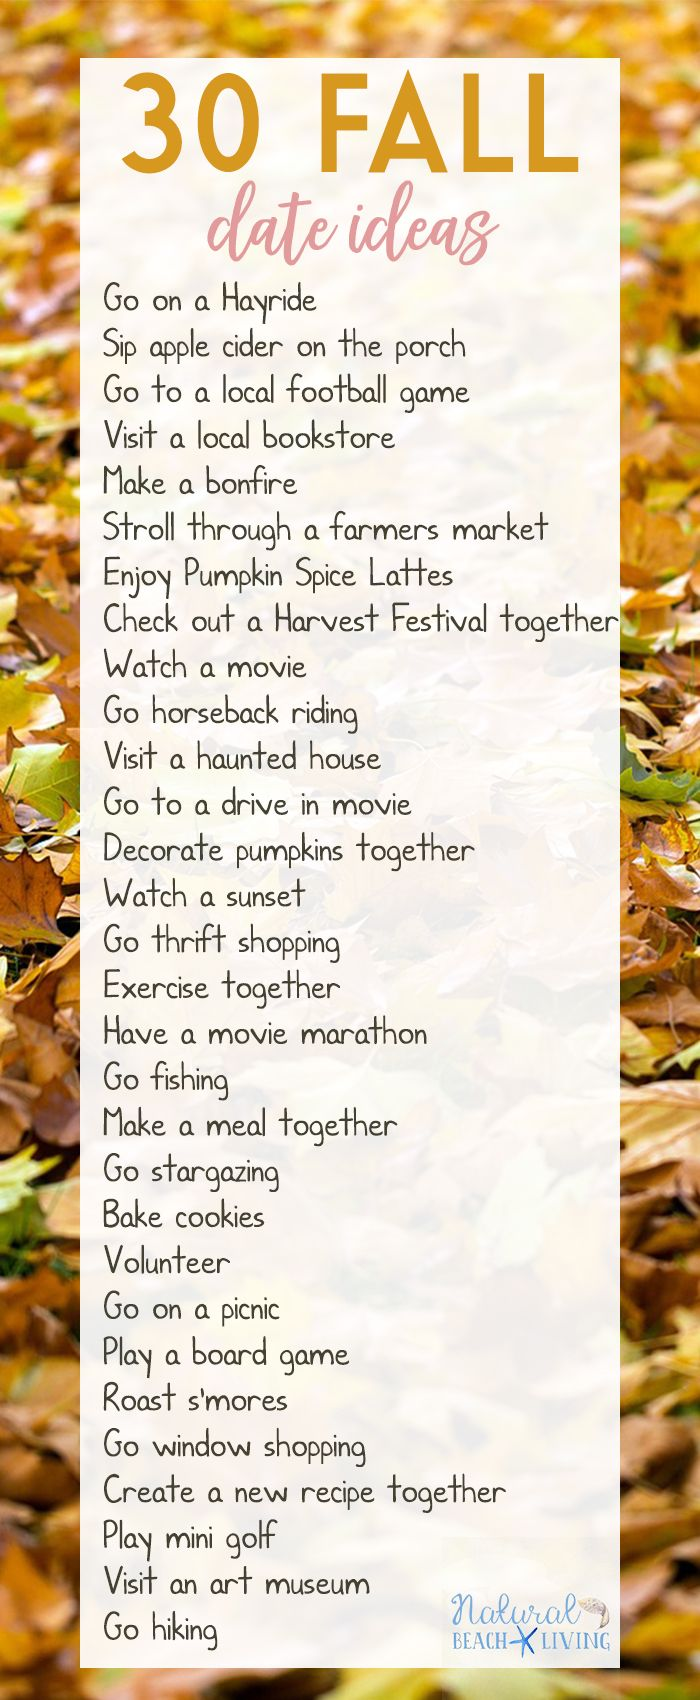 Fun Date Night Ideas for Fall, Cheap Date Night Ideas, Fall Bucket List, Great Date Night Ideas for Married Couples, Free Date night ideas to do at home